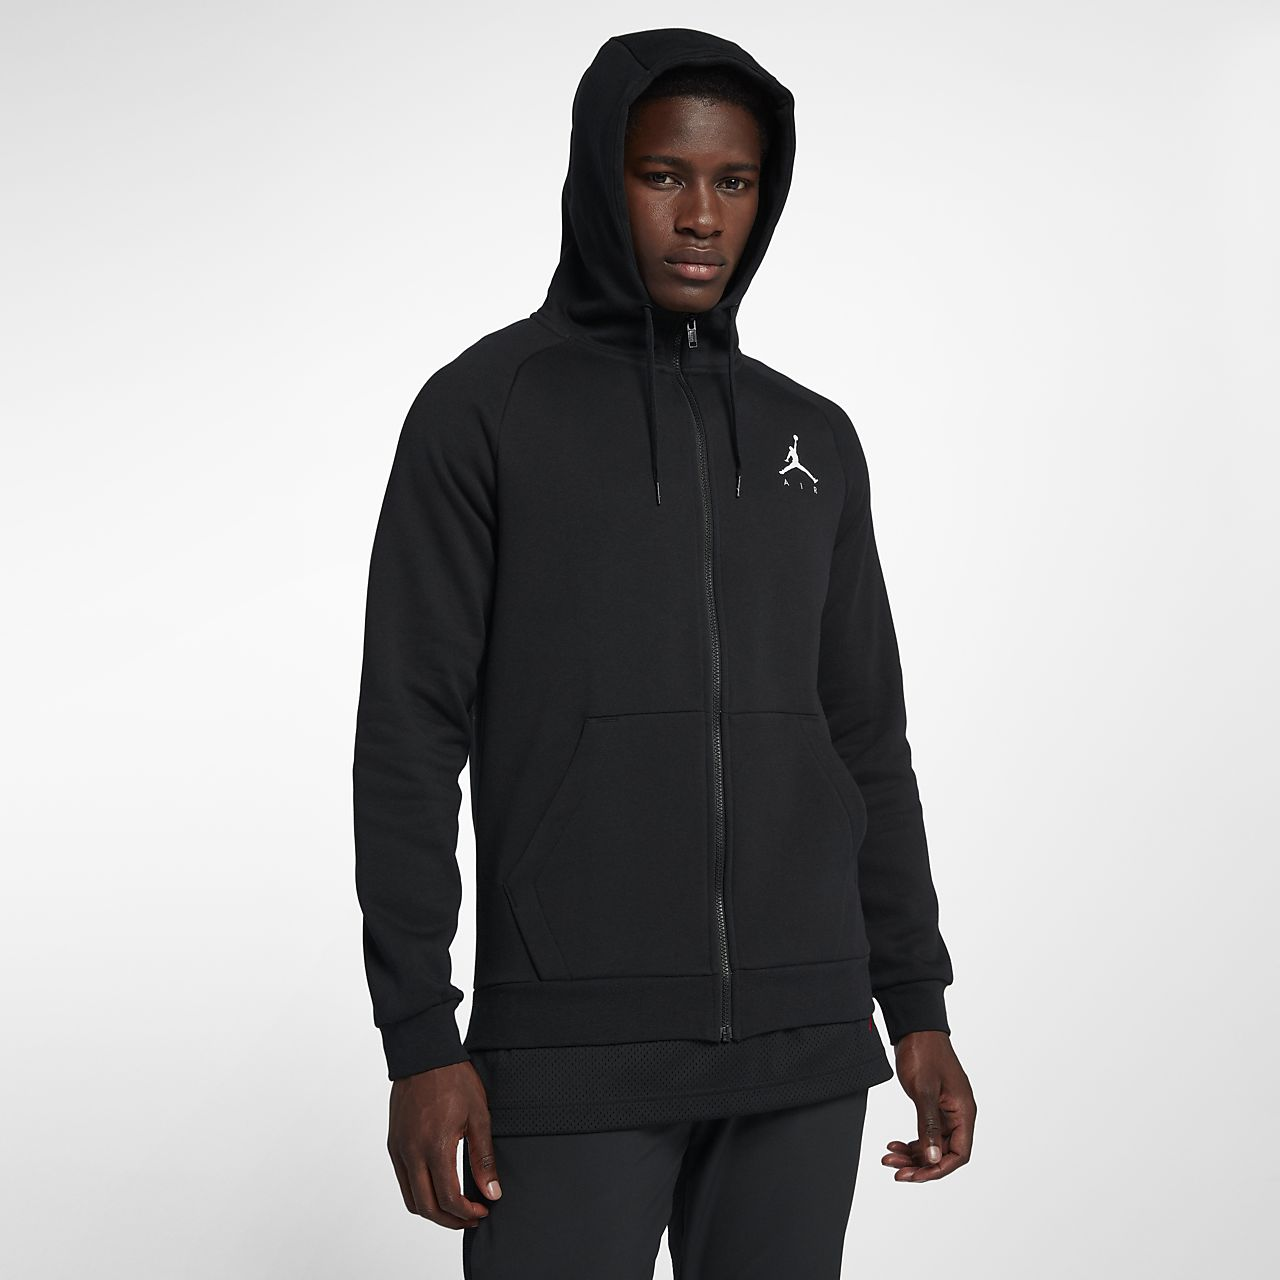 Jordan Jumpman Men's Fleece Full-Zip Hoodie